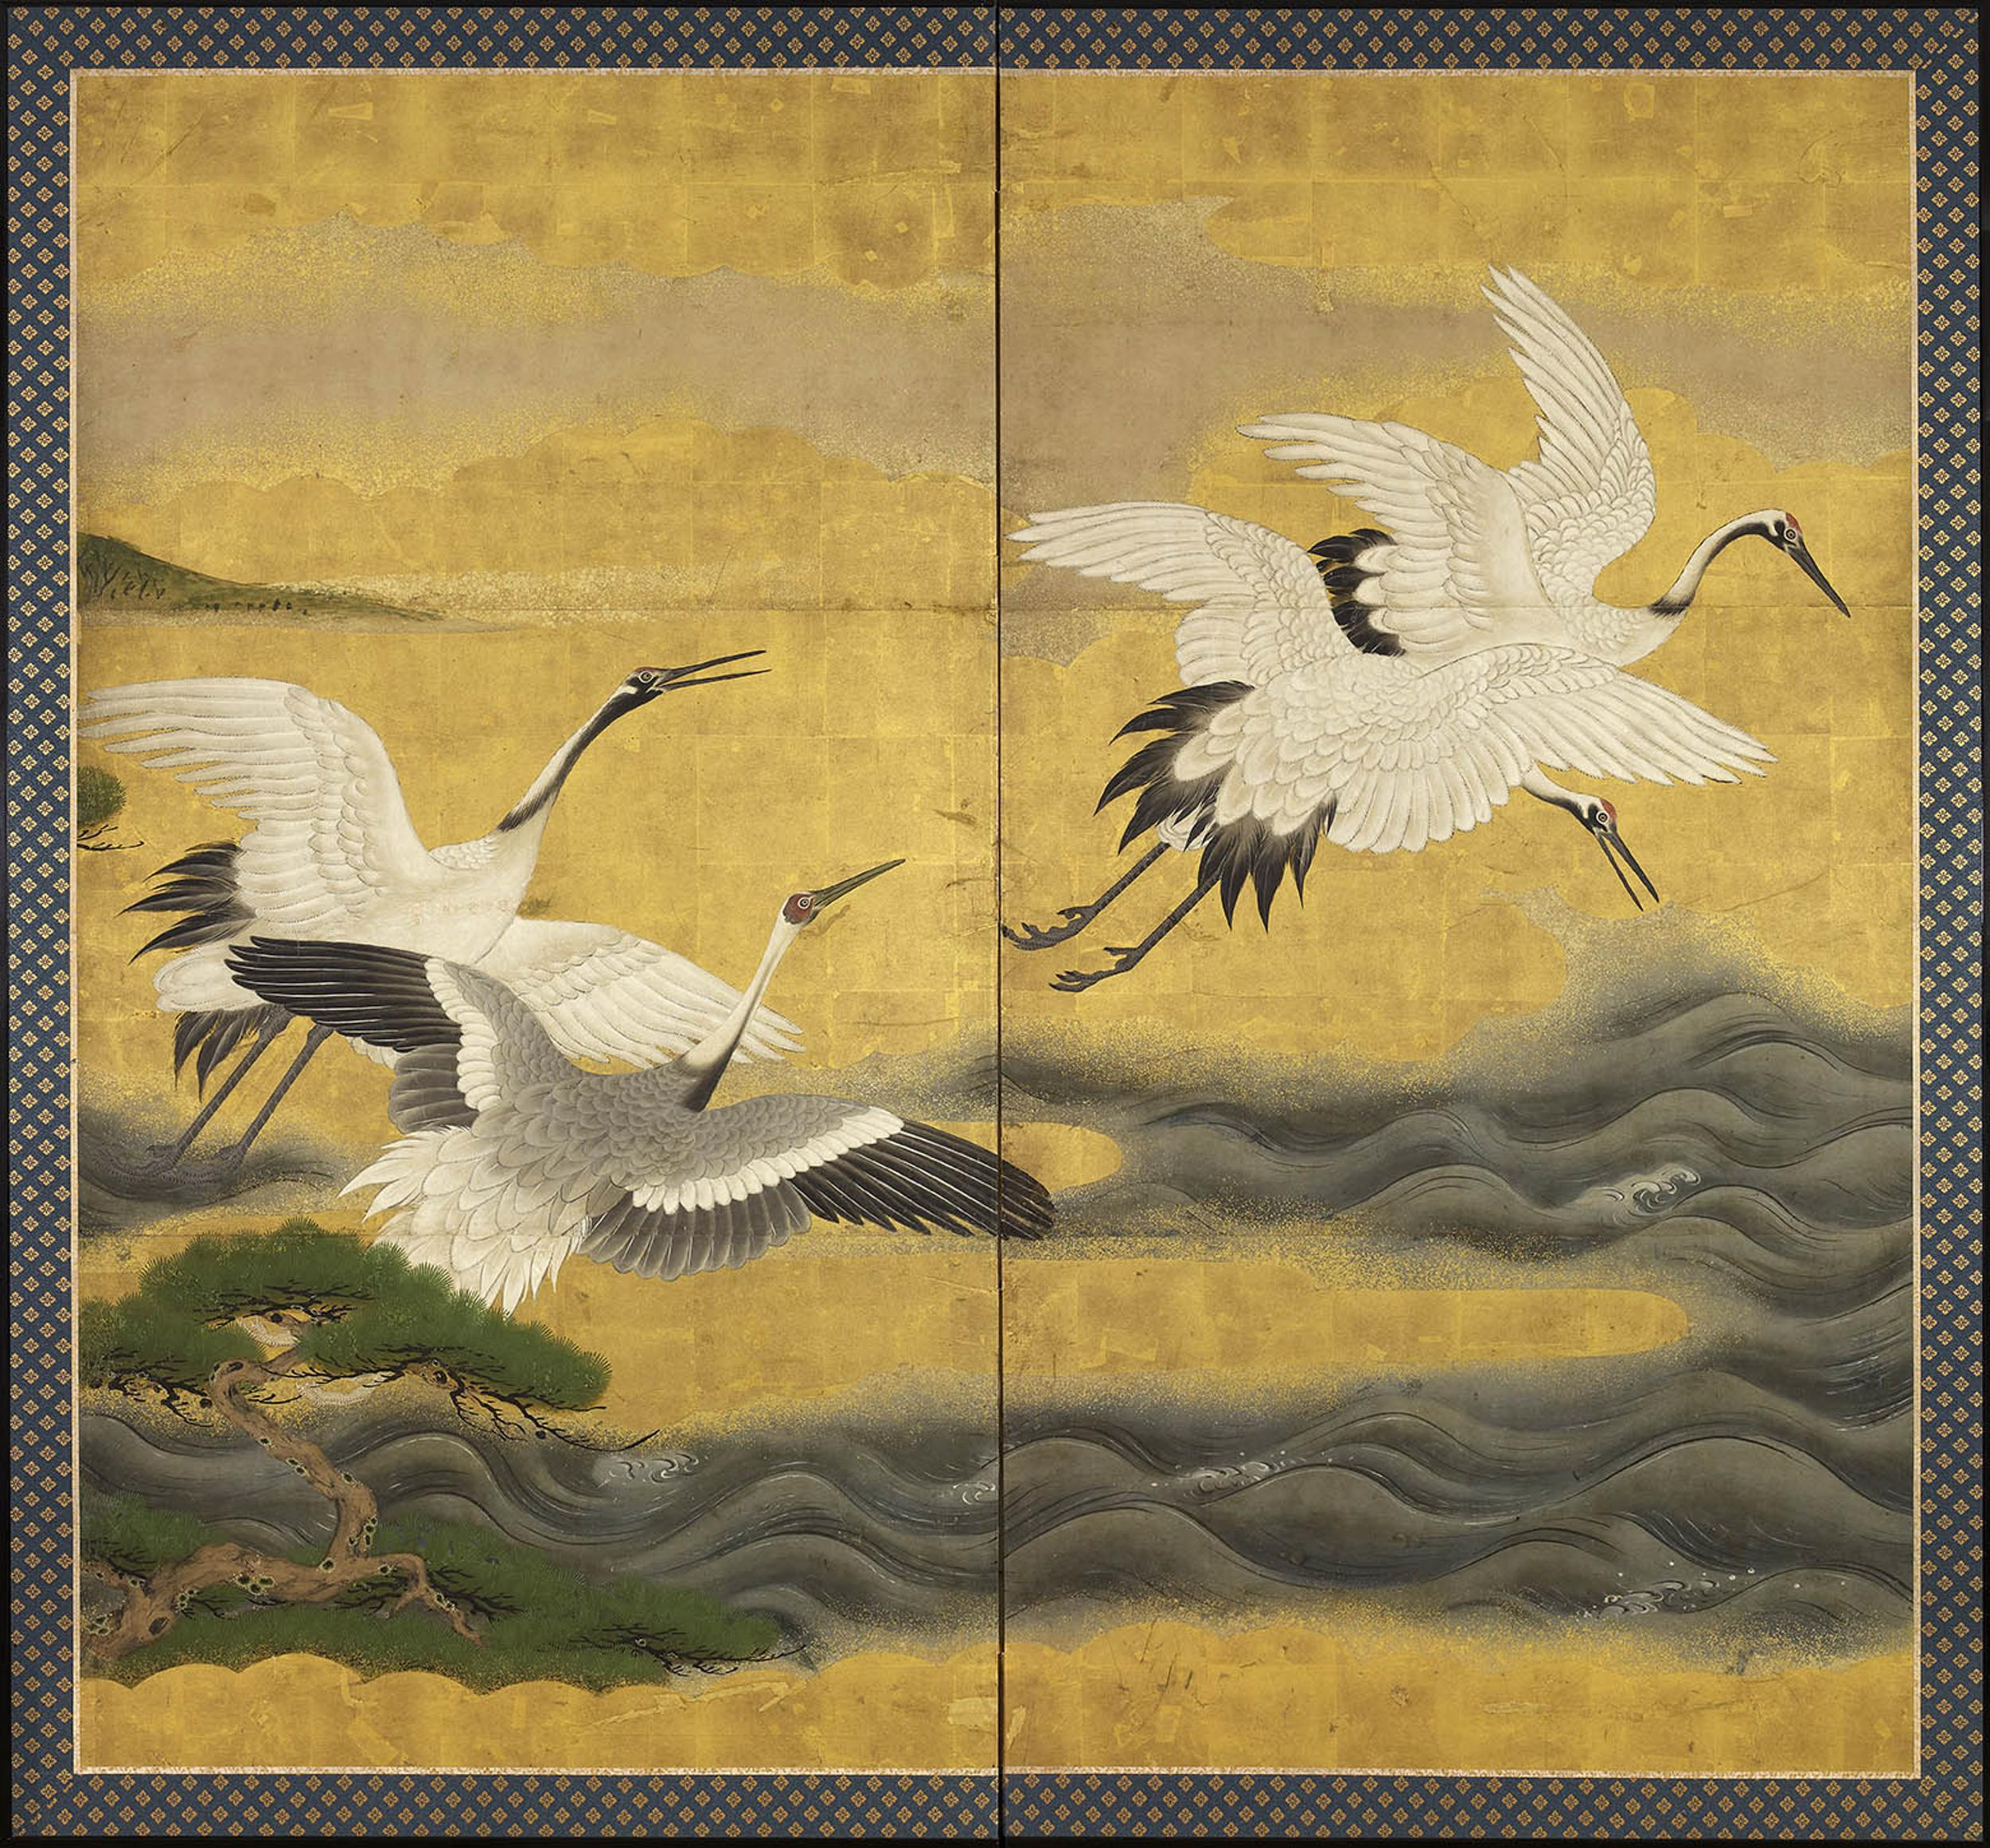 6778 A Two Fold Paper Screen Painted In Ink And Colour On A Gold Ground Wi Gregg Baker Asian Art